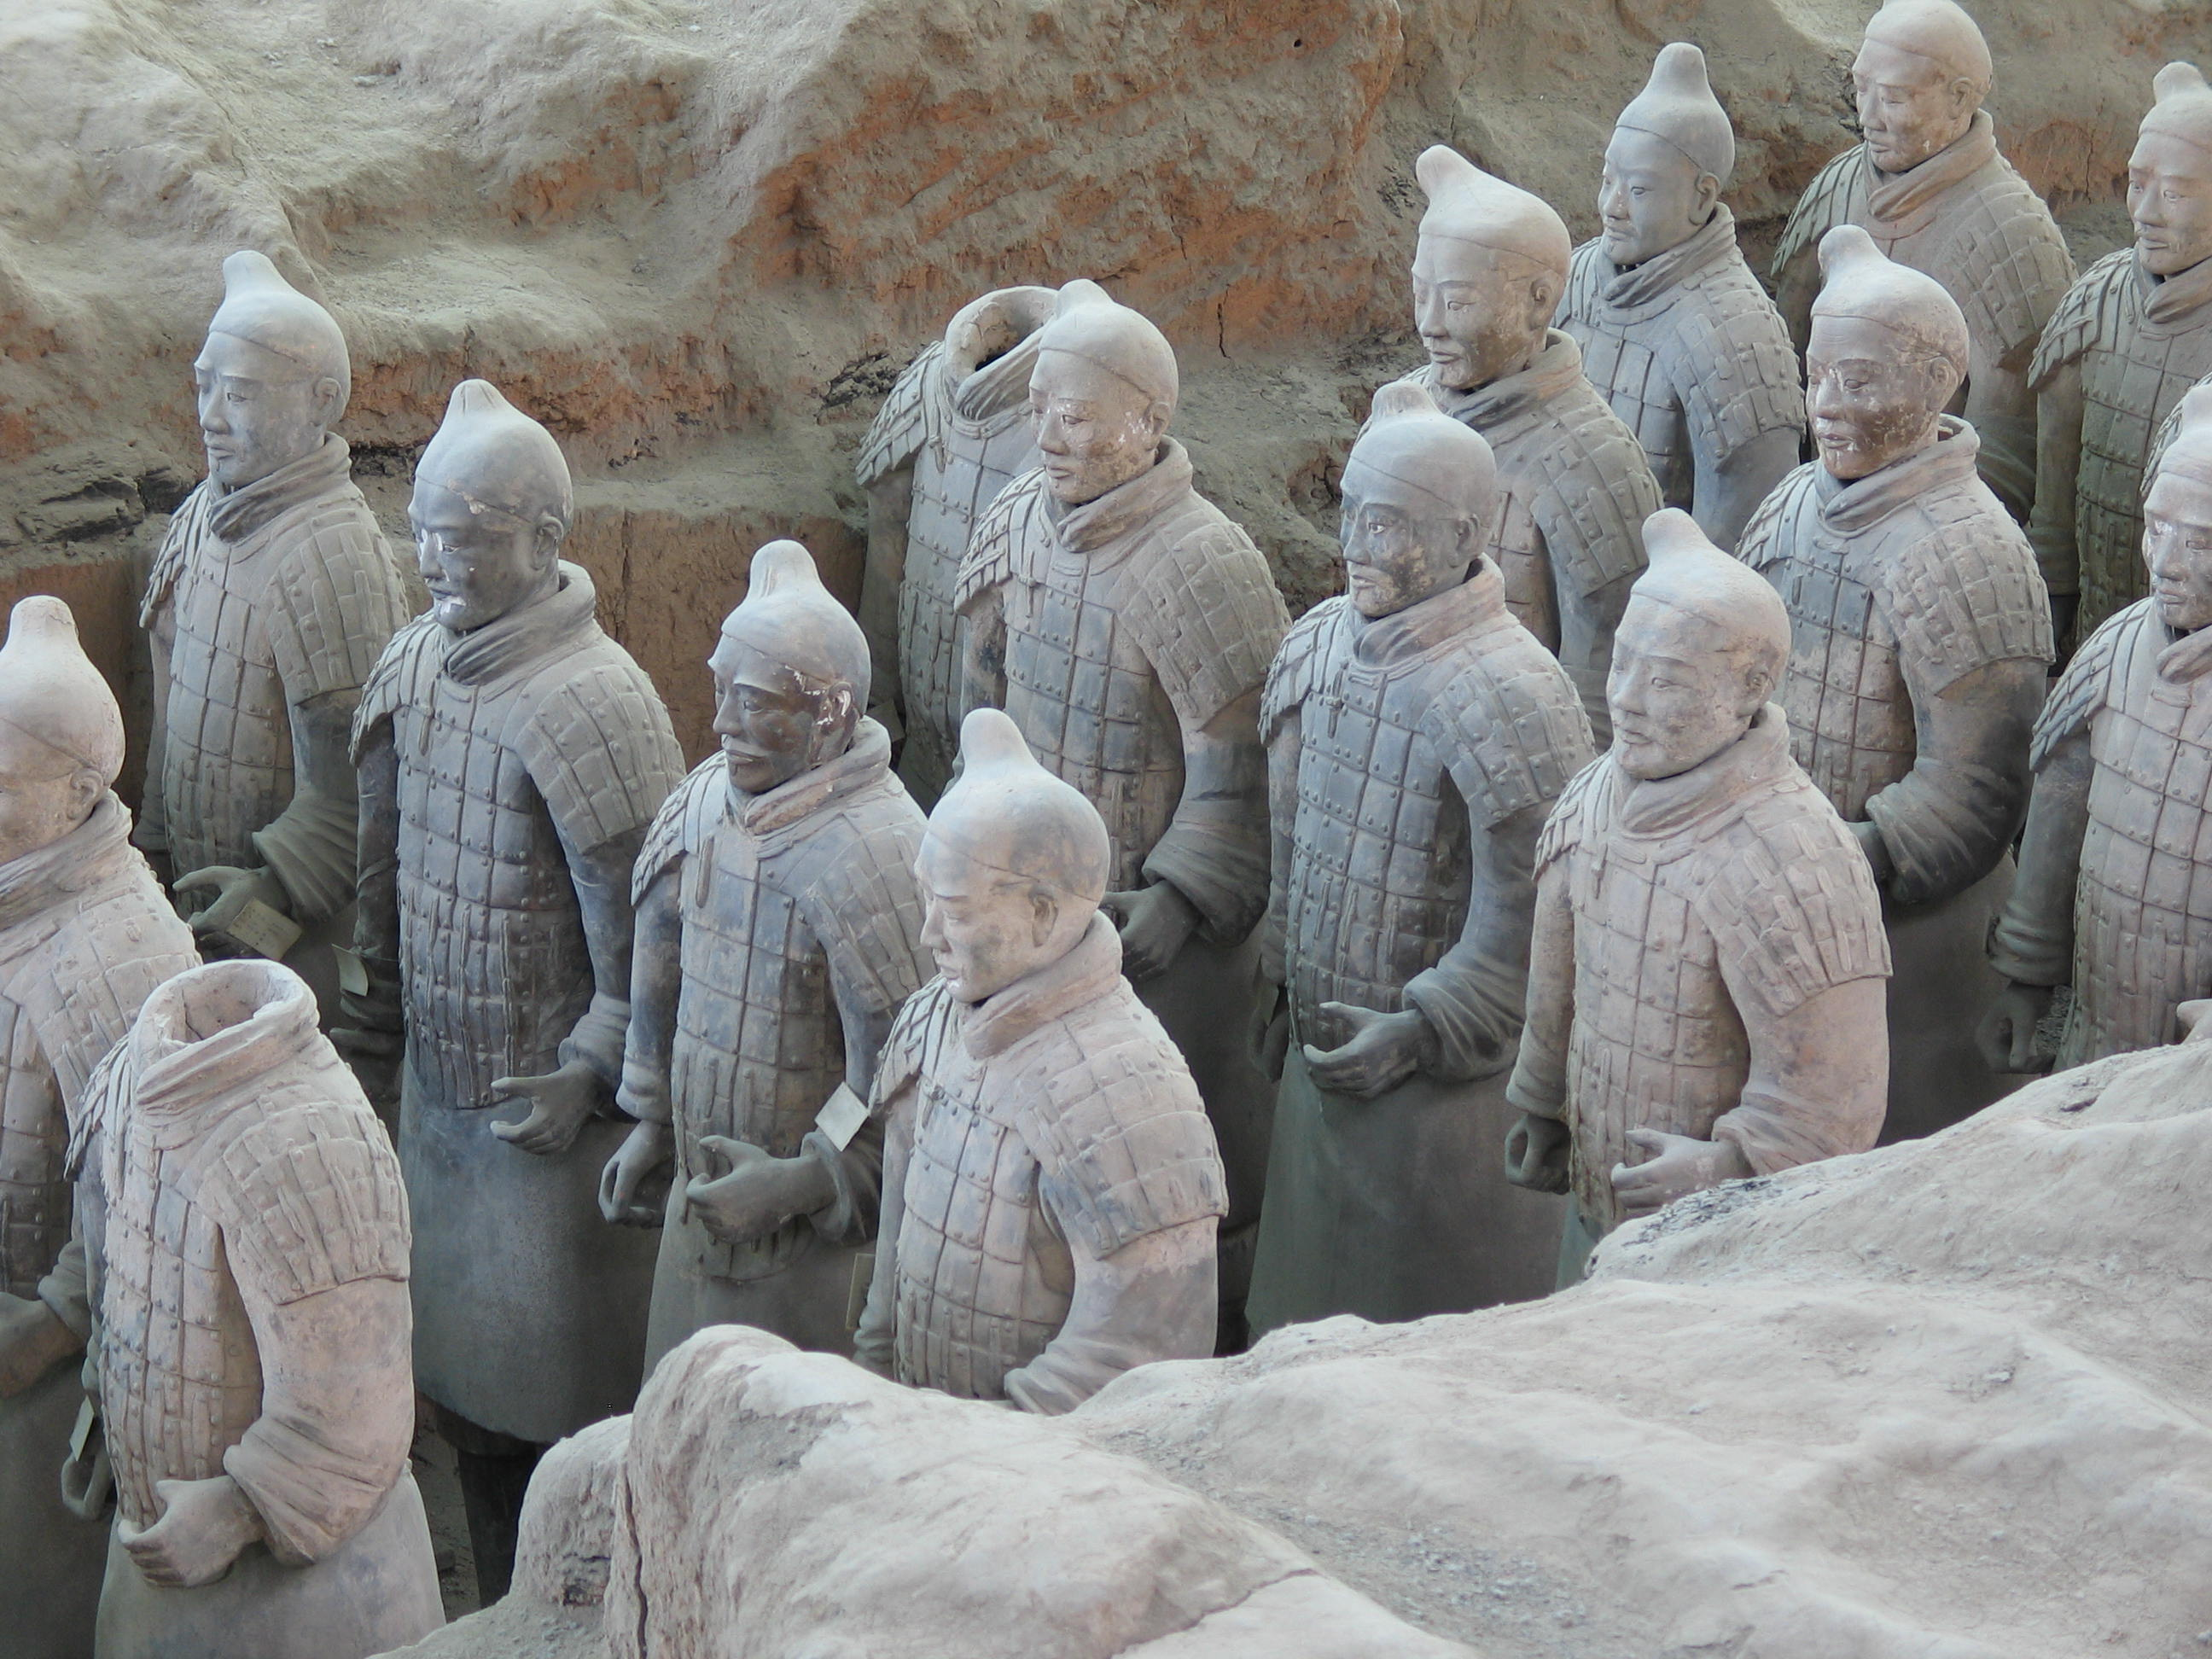 ancient chinese architecture worksheet. the qin dynasty in china: great wall \u0026 legalism - video lesson transcript | study.com ancient chinese architecture worksheet k